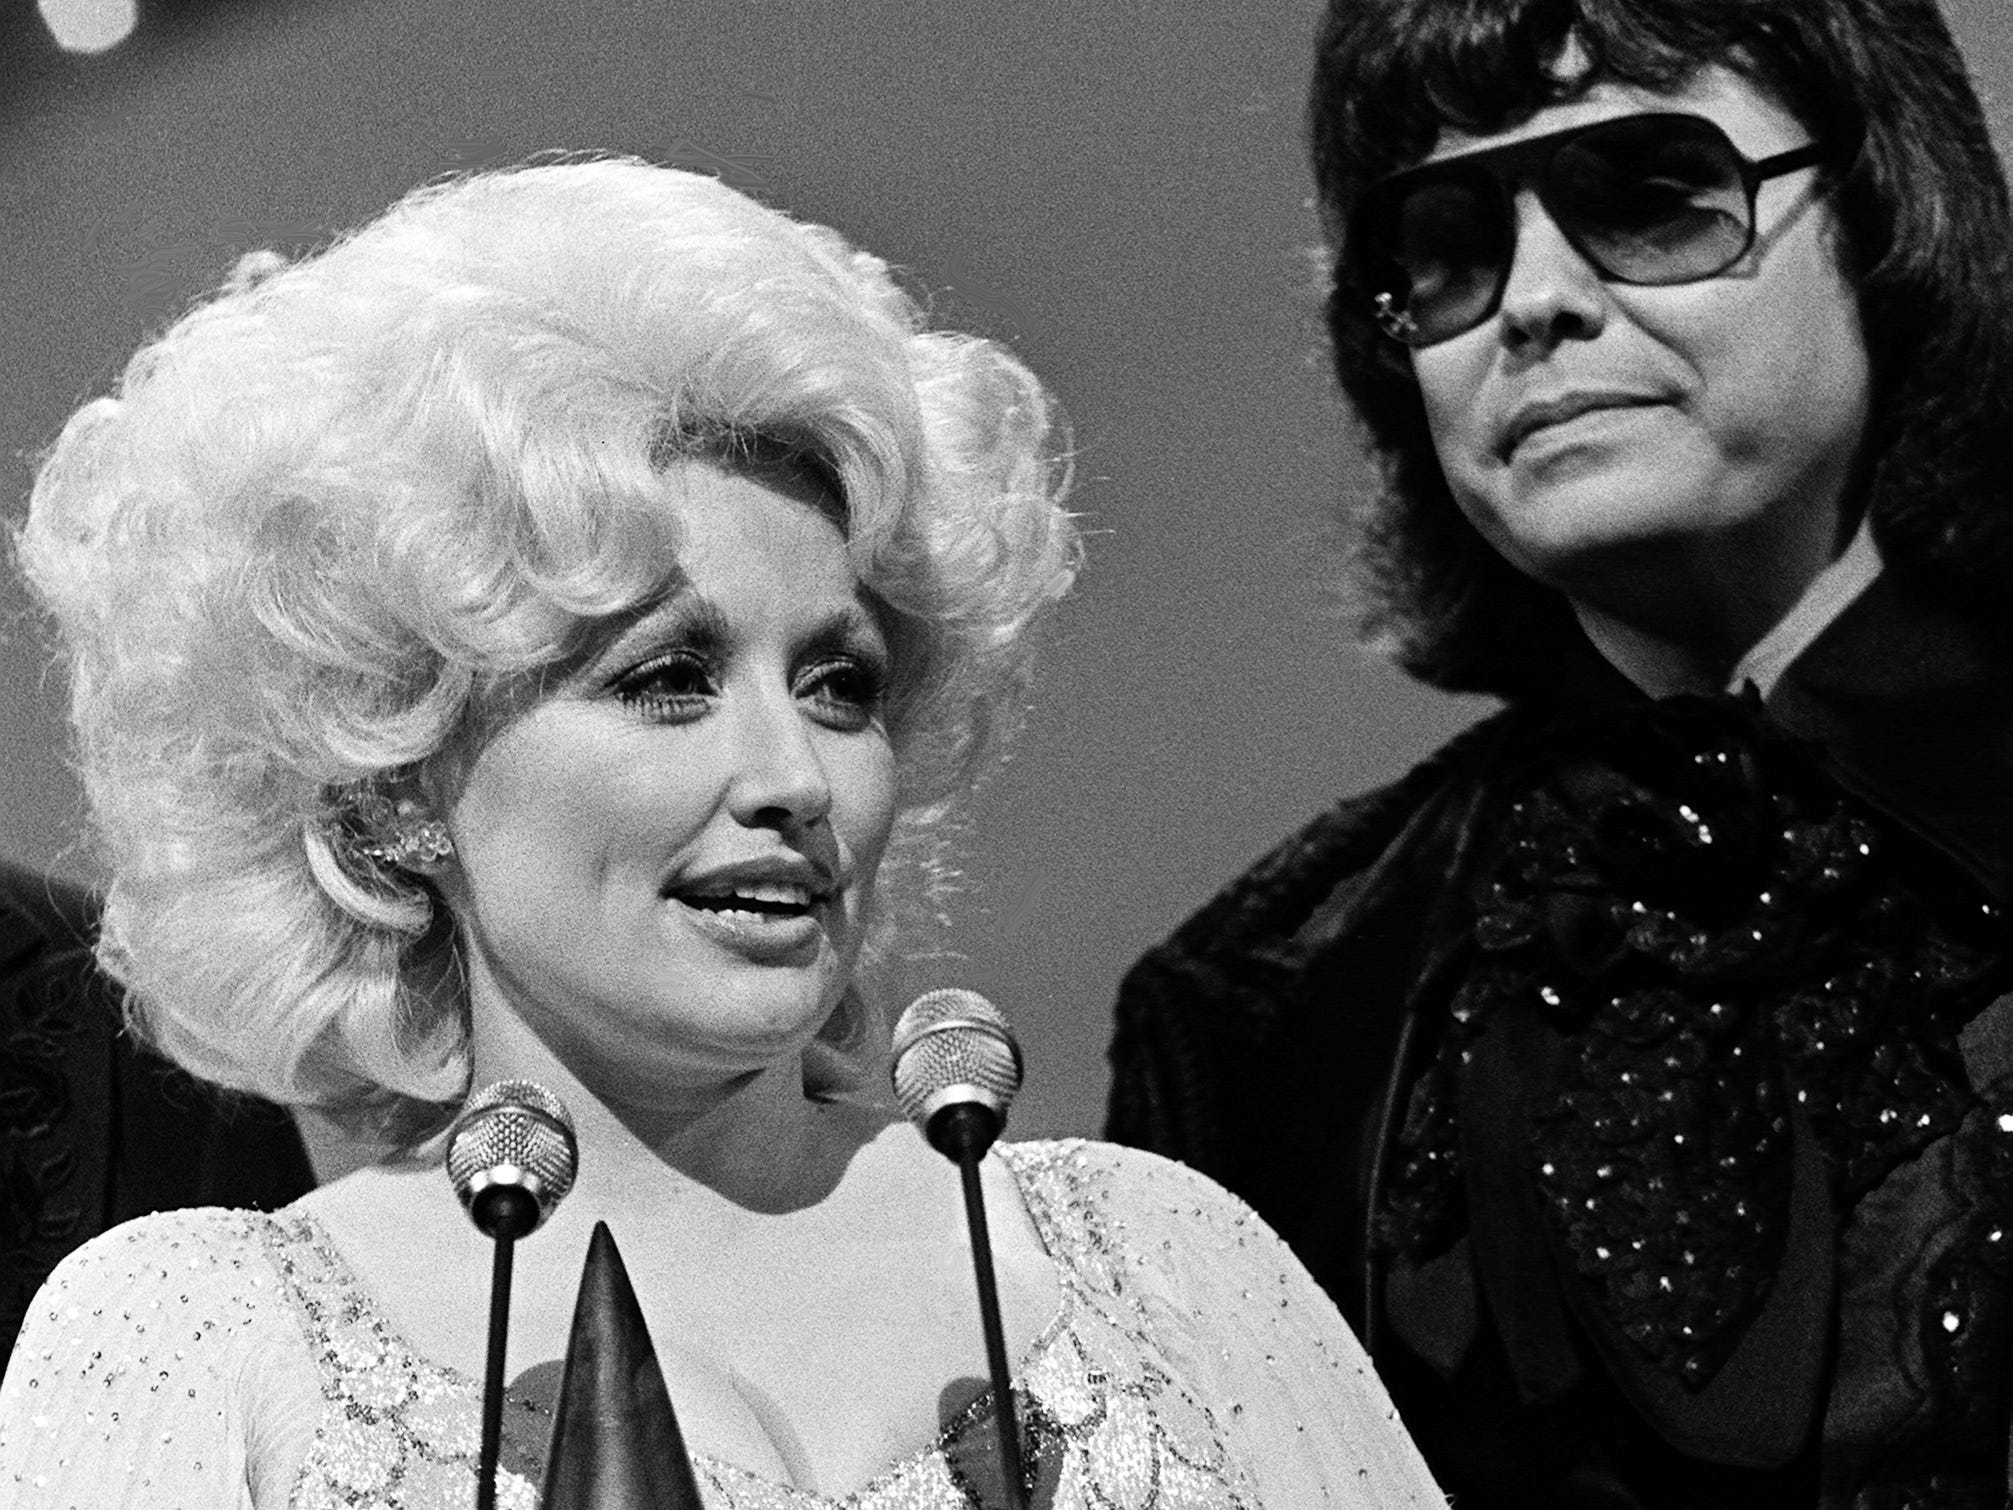 Dolly Parton is presented the Entertainer of the Year award by Ronnie Milsap during the 12th annual CMA Awards show at the Grand Ole Opry House on Oct. 9, 1978.